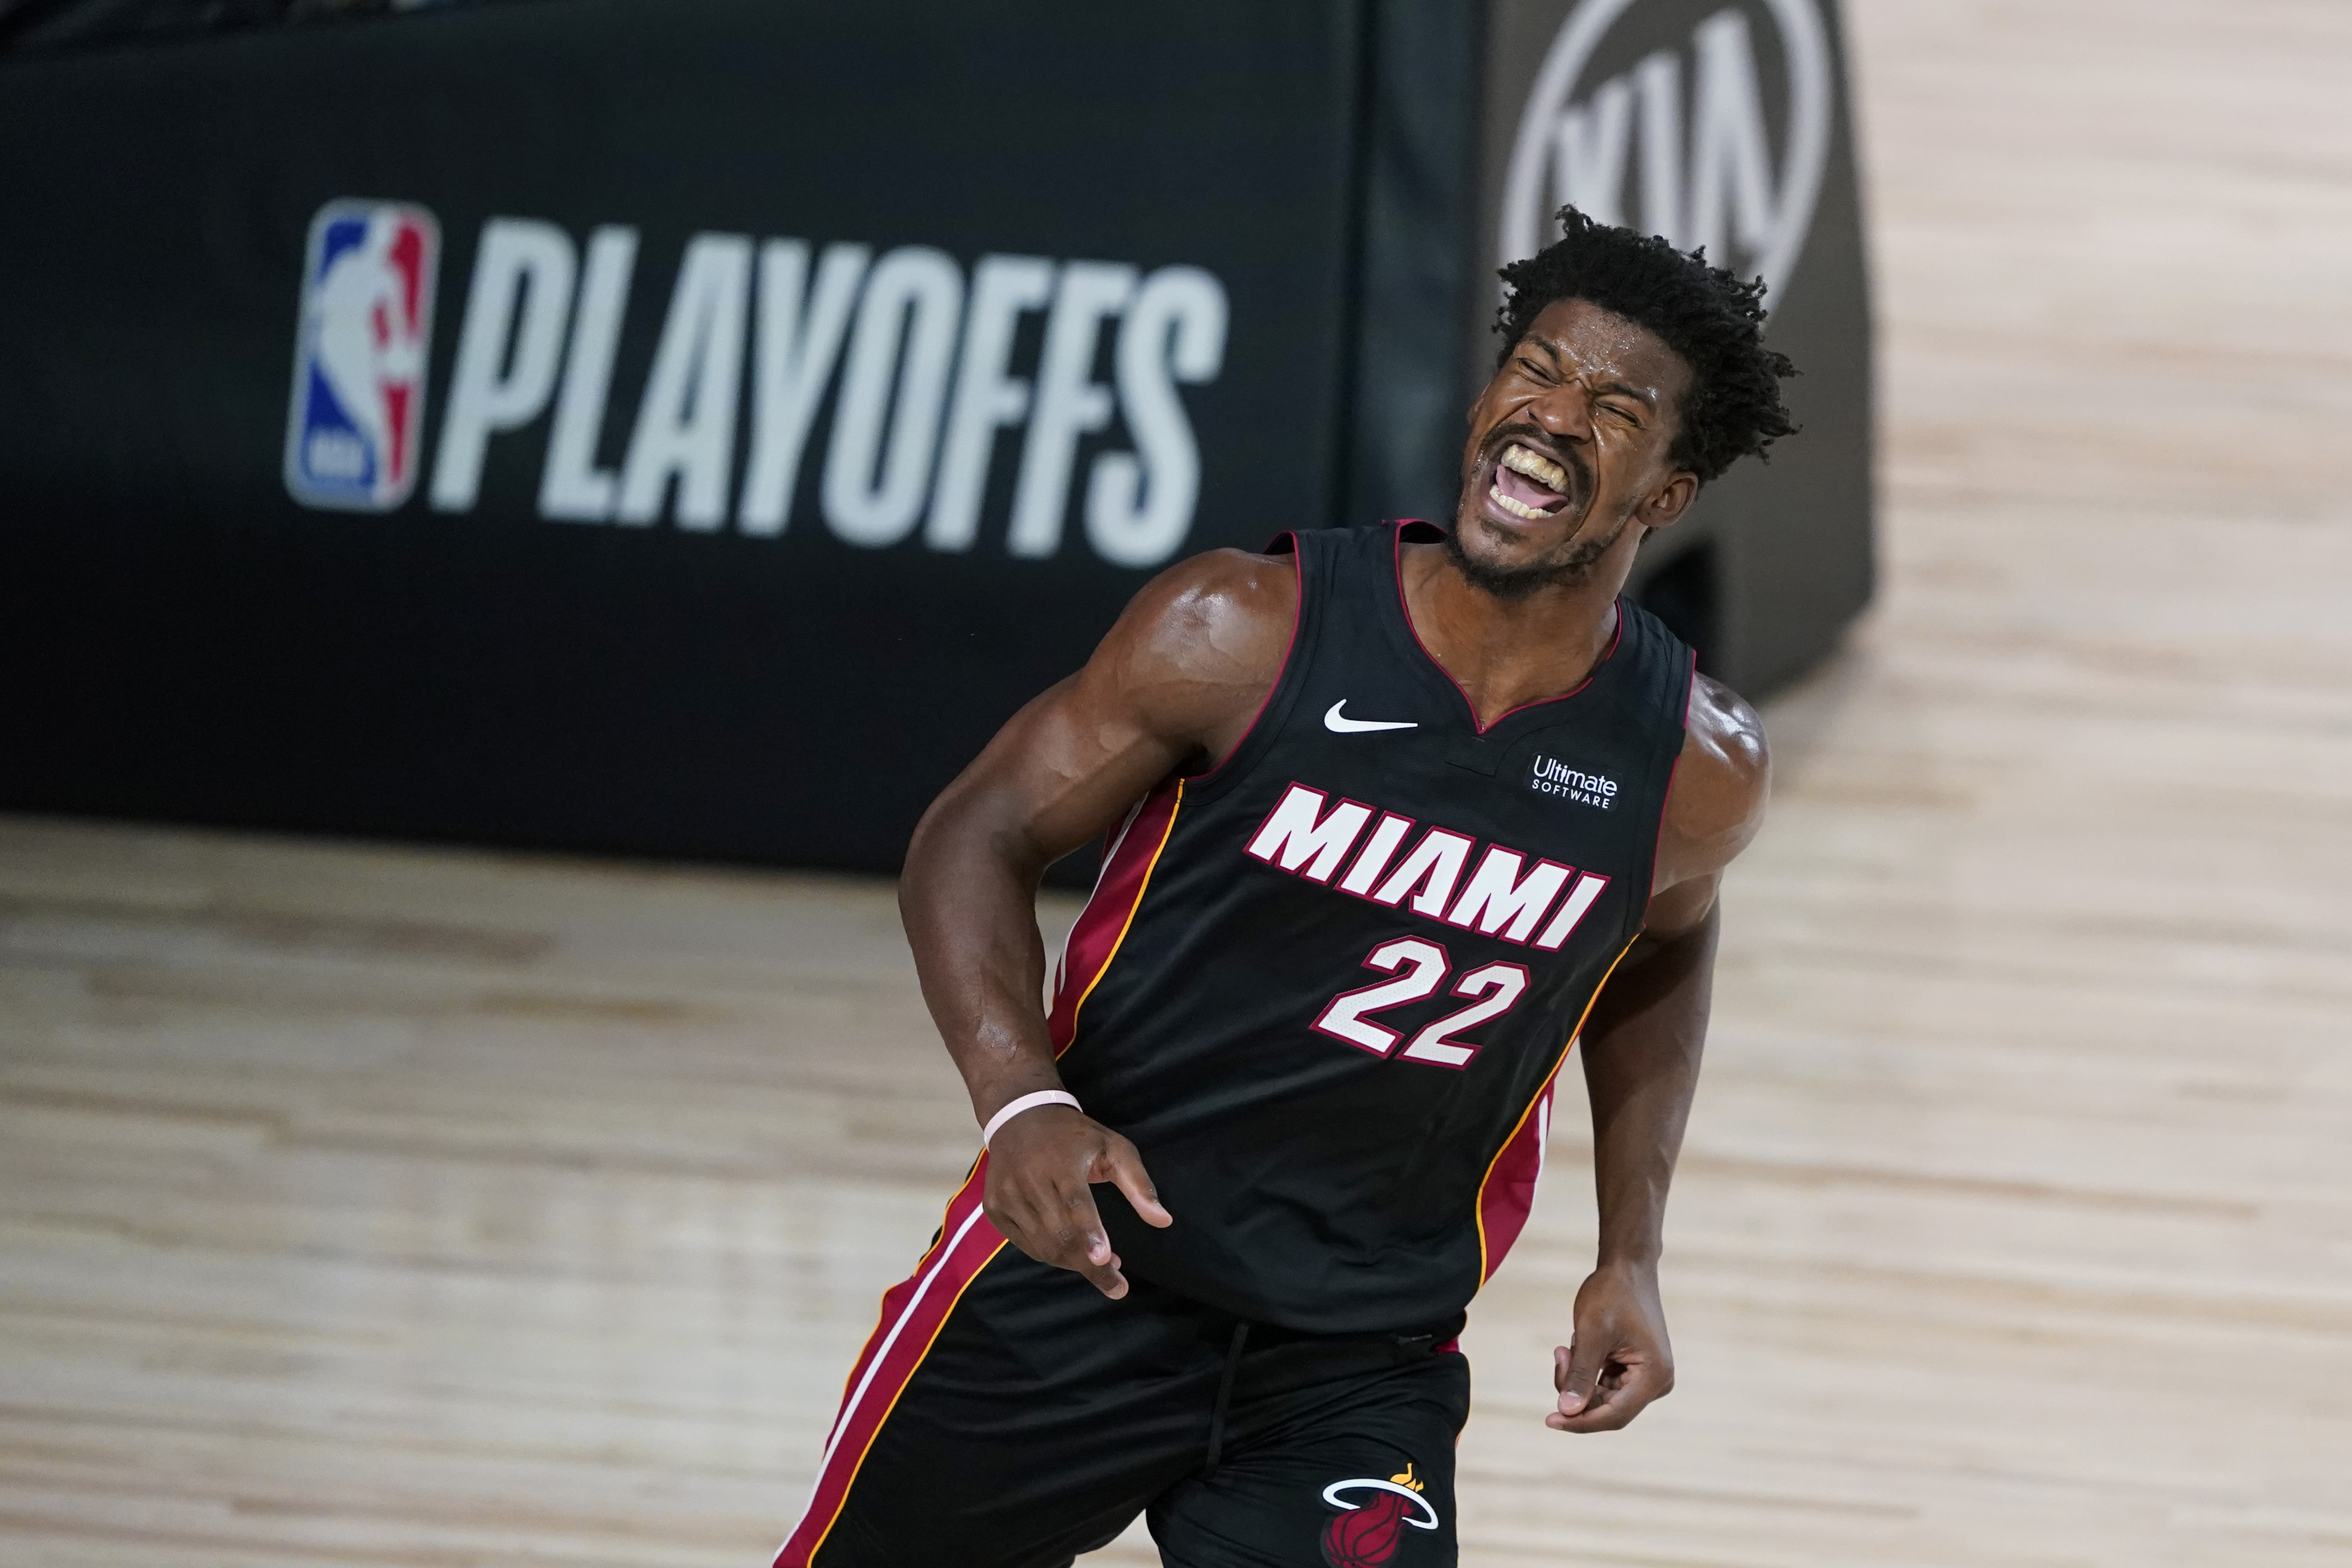 Jimmy Butler celebrates after making a good play